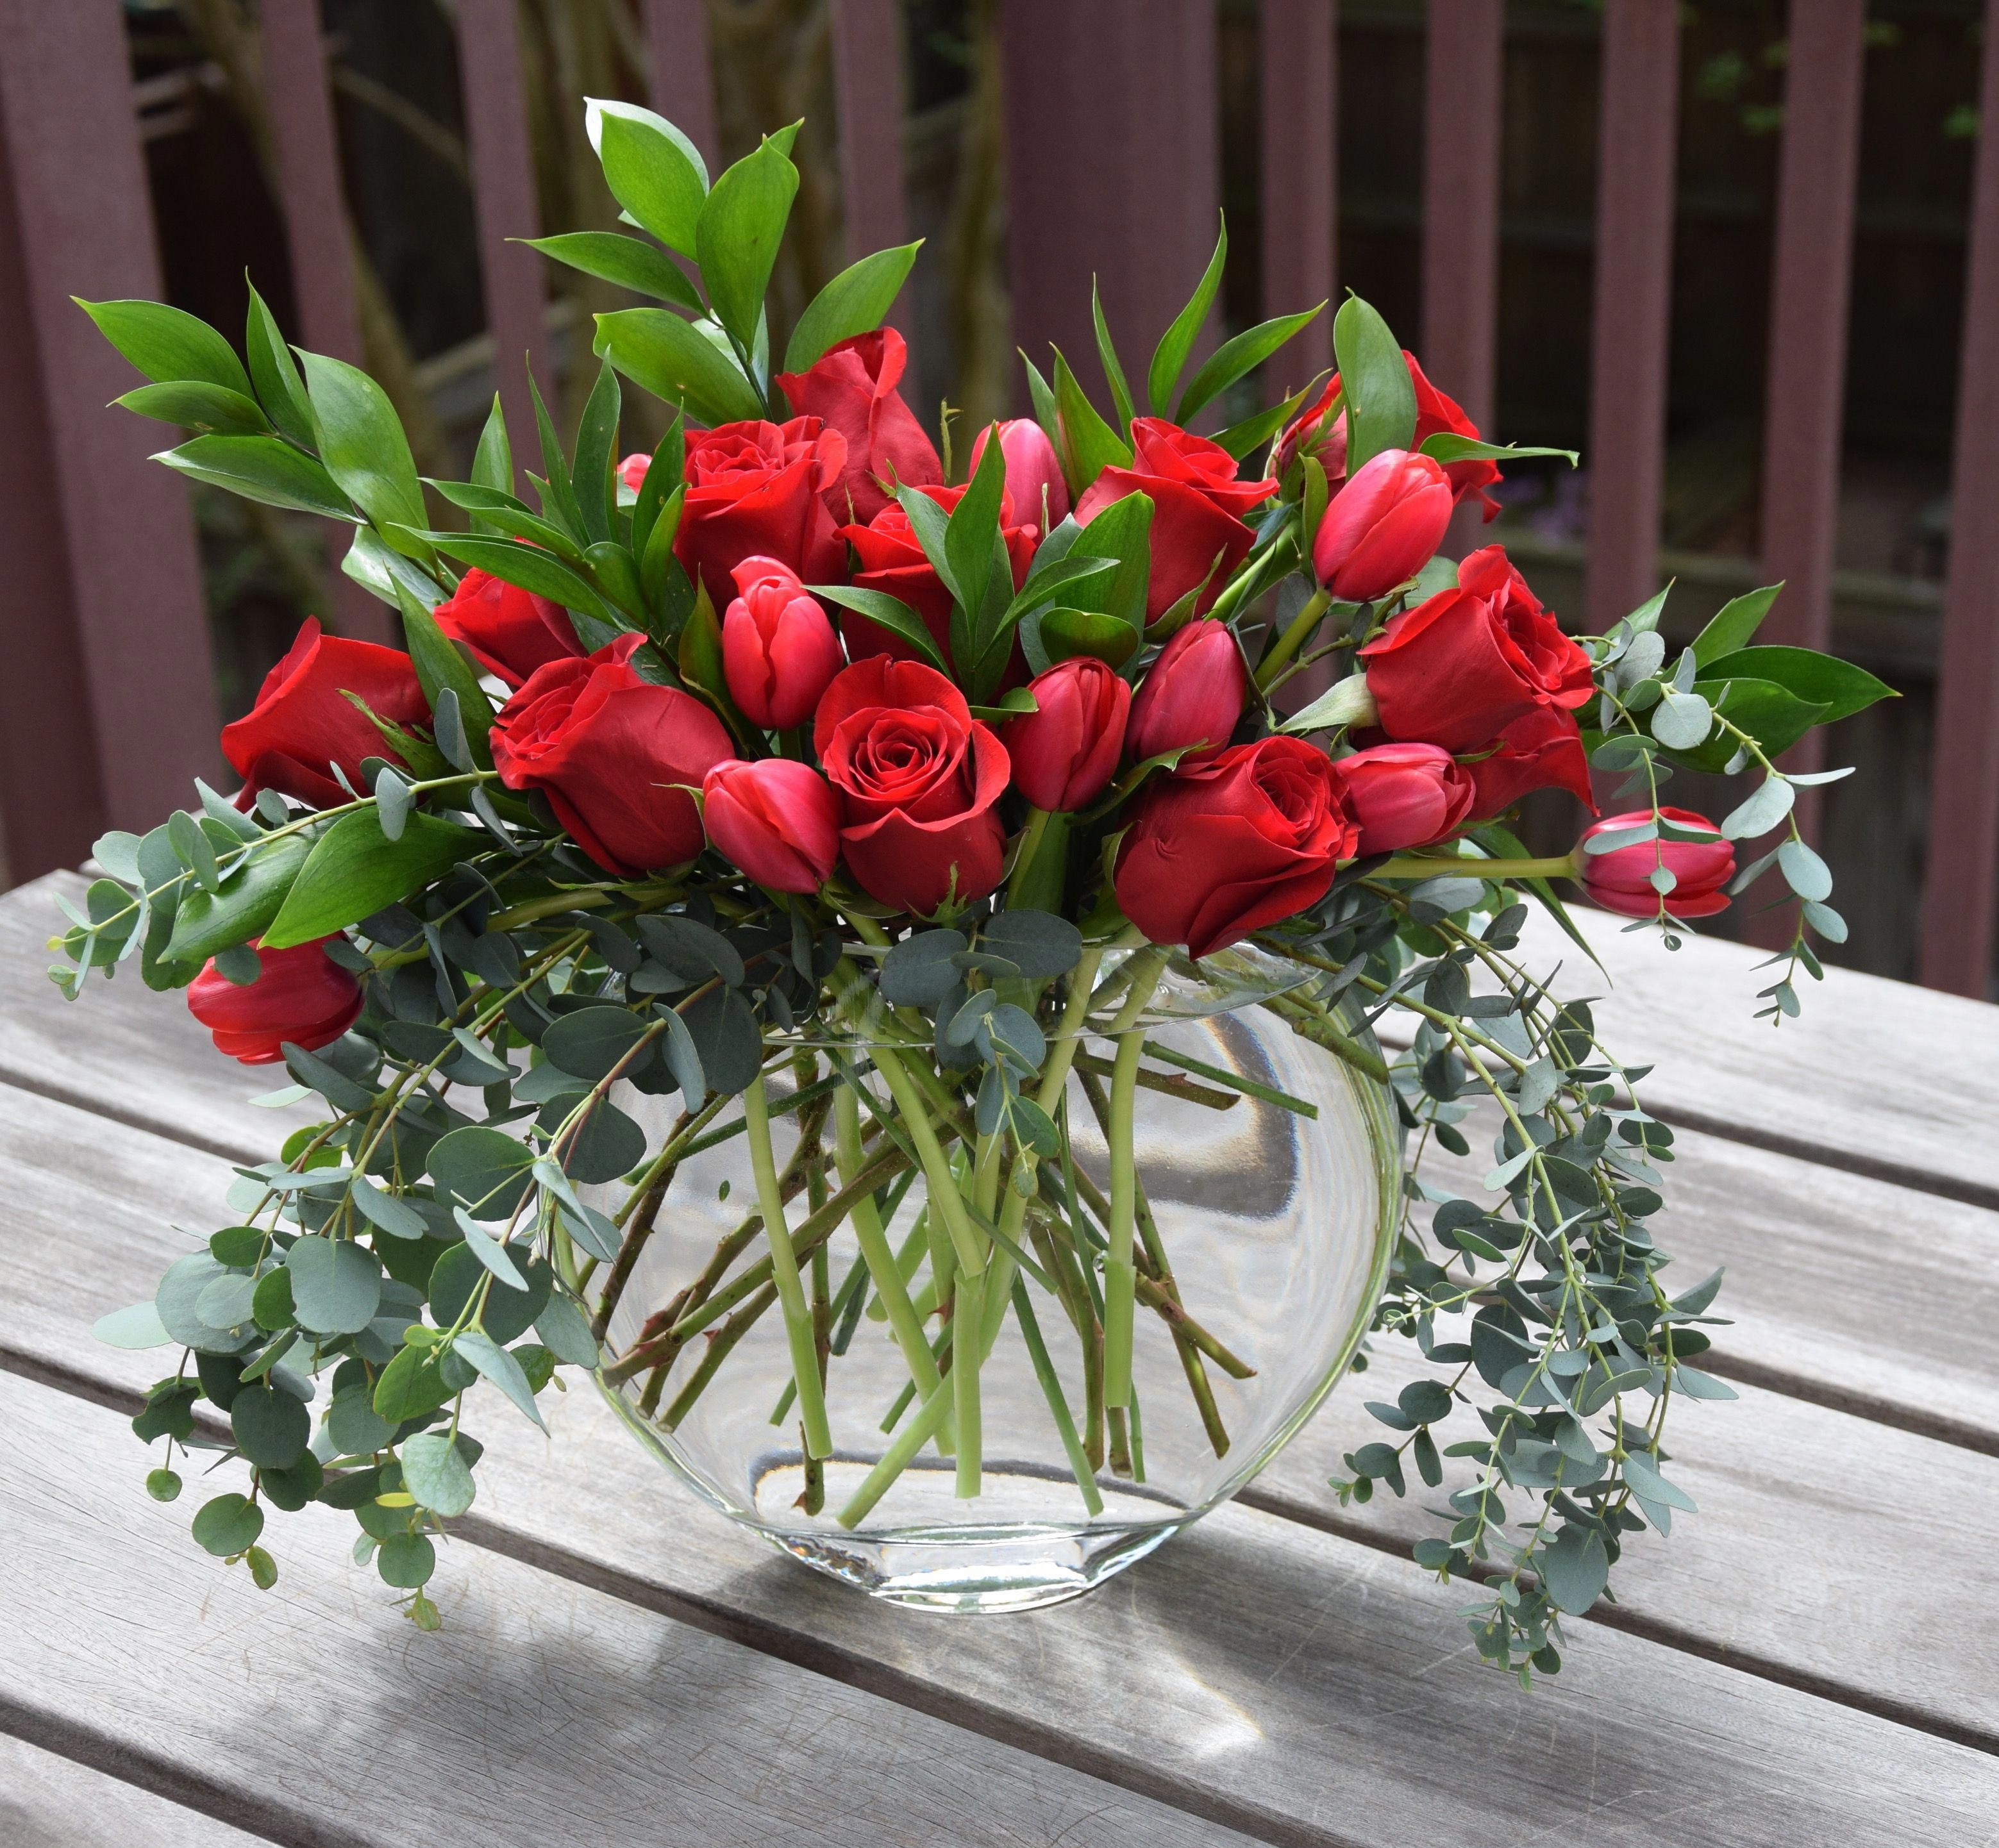 Latest Guide For Wedding Flower Arrangements Include Items Which Will Be Useful Such As Fresh Flowers Arrangements Tulips Arrangement Red Flower Arrangements